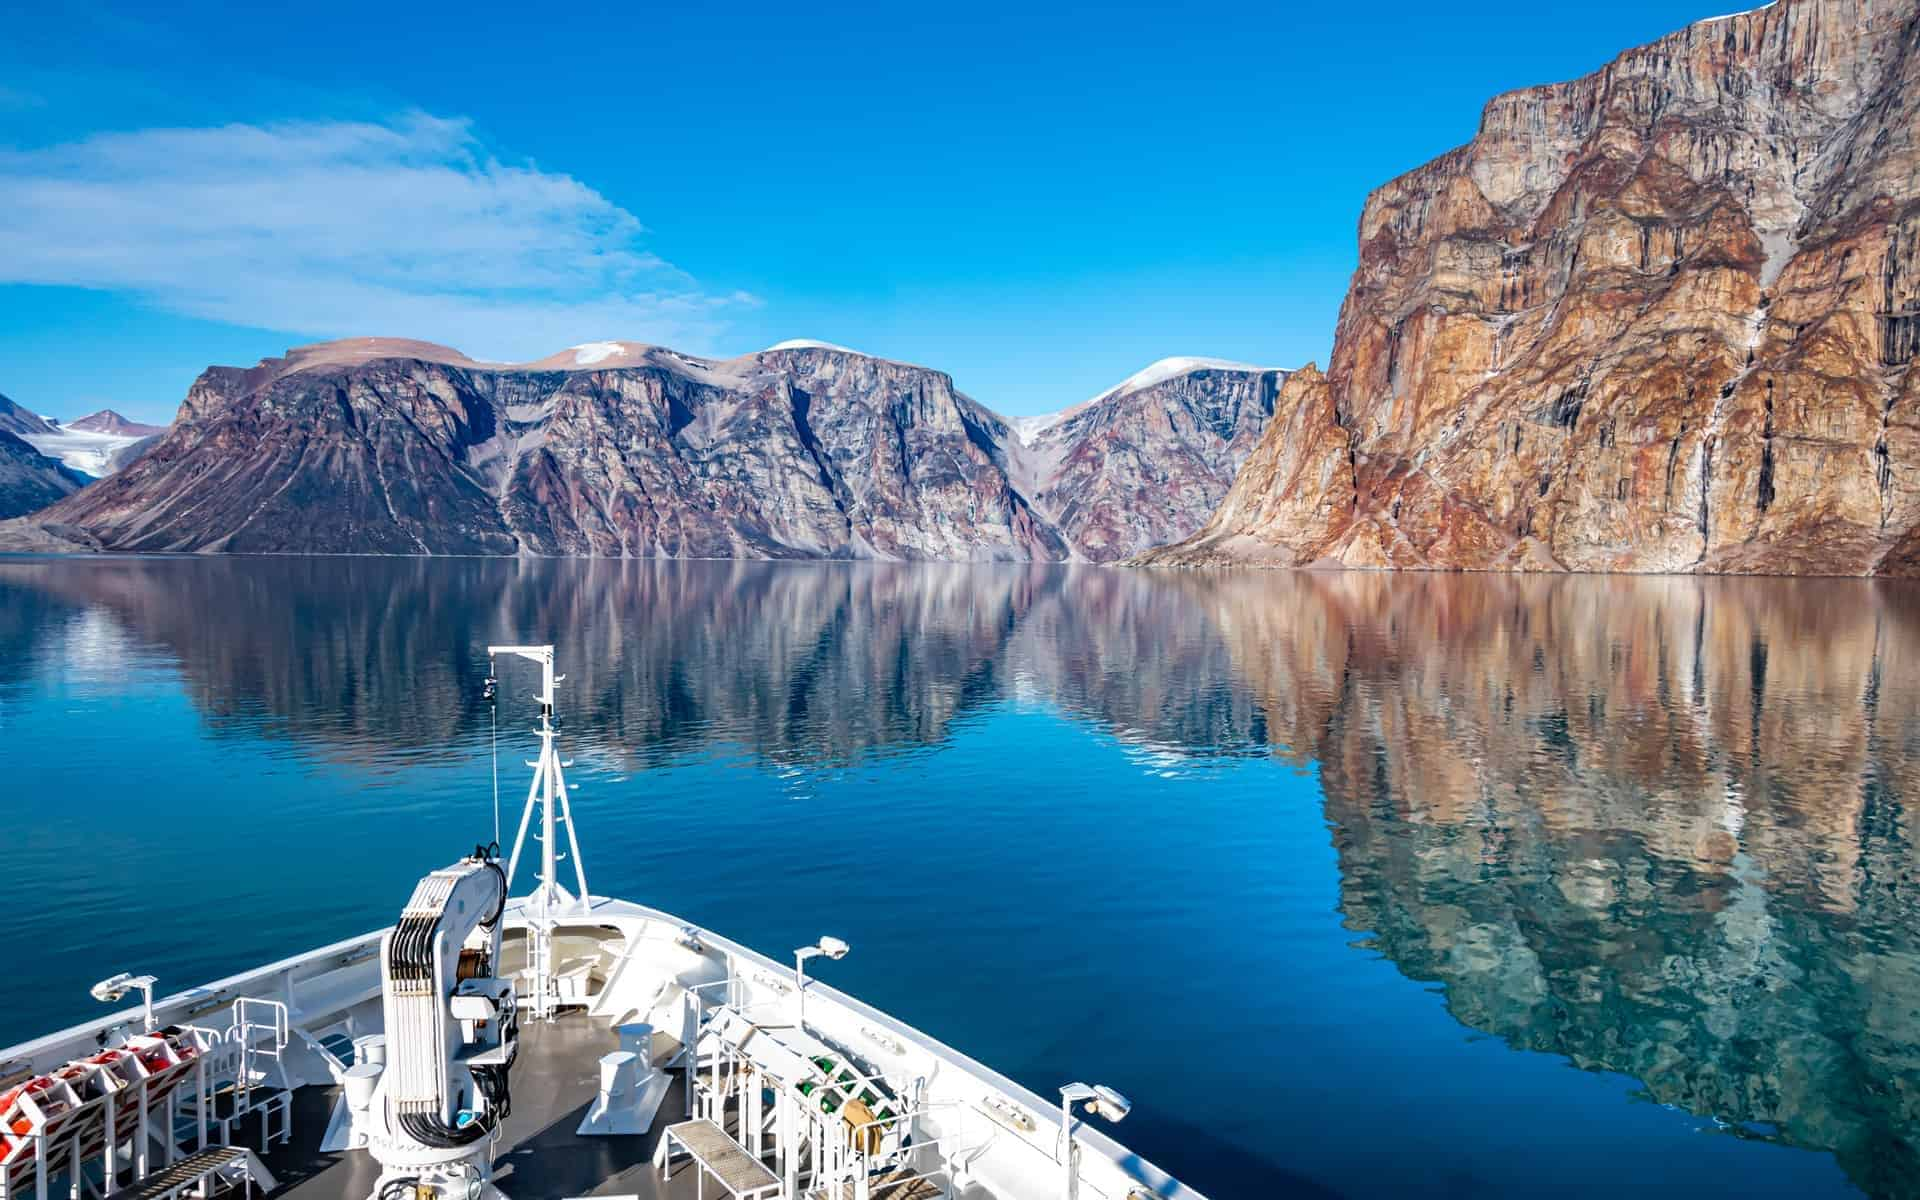 Baffin Island Canada. Expedition cruise ship in Sam Ford Fjord, Baffin sea, Arctic Canada, Nunavut